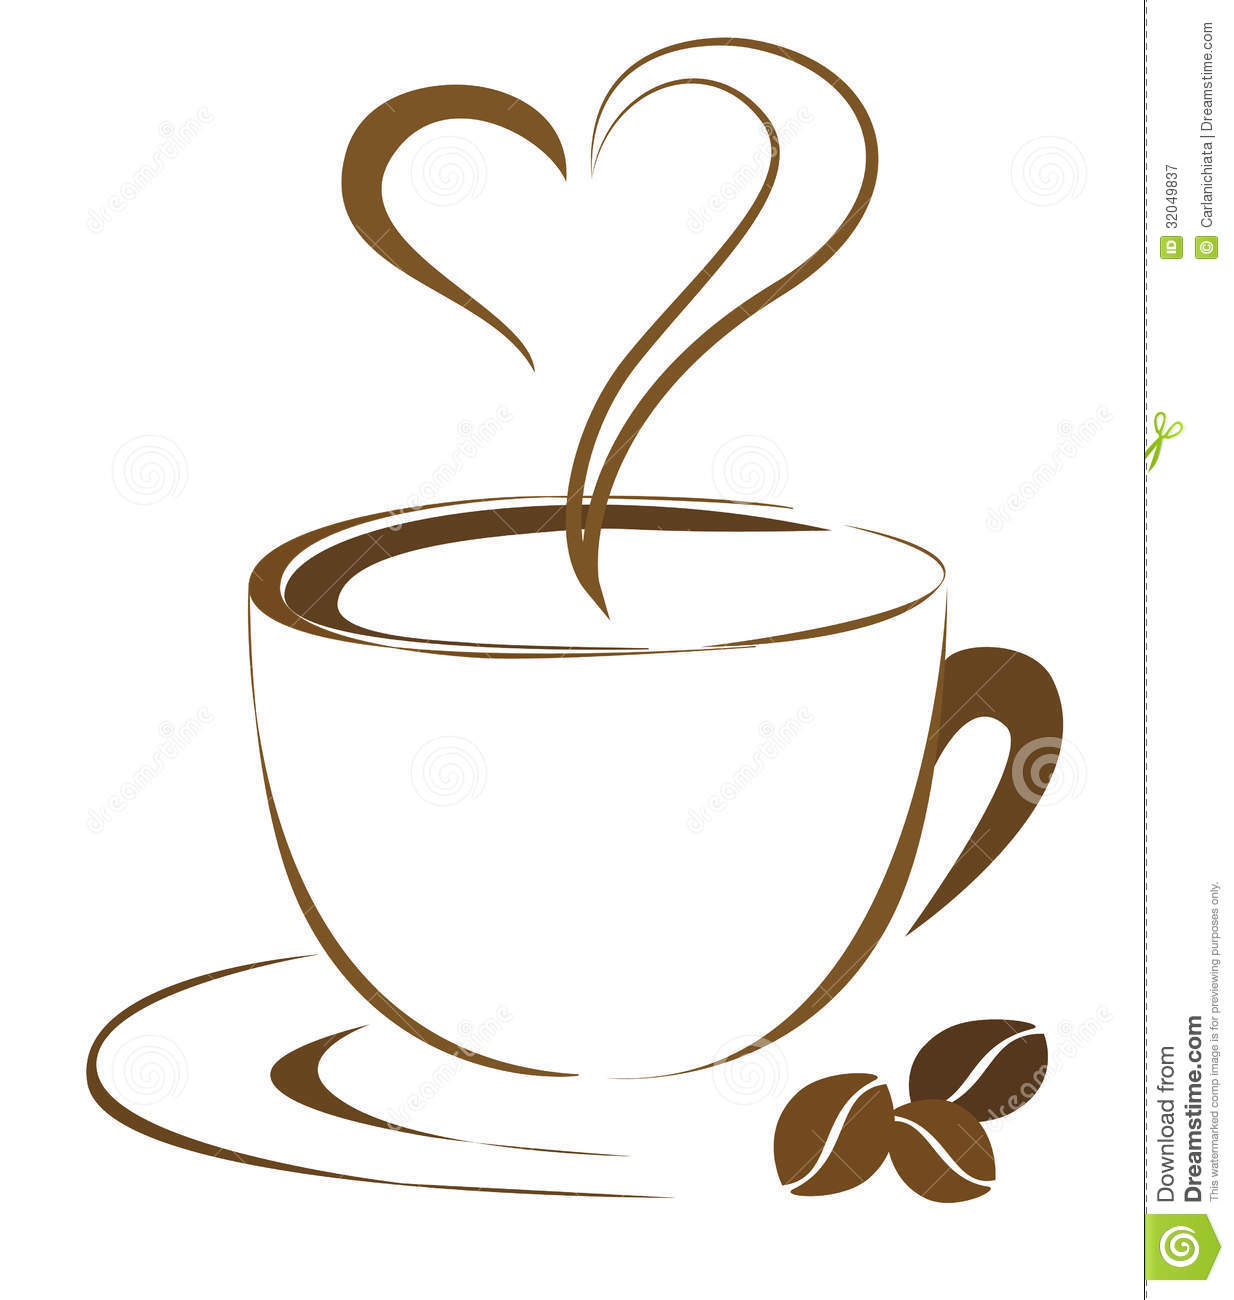 Coffee cup coffee clip art at